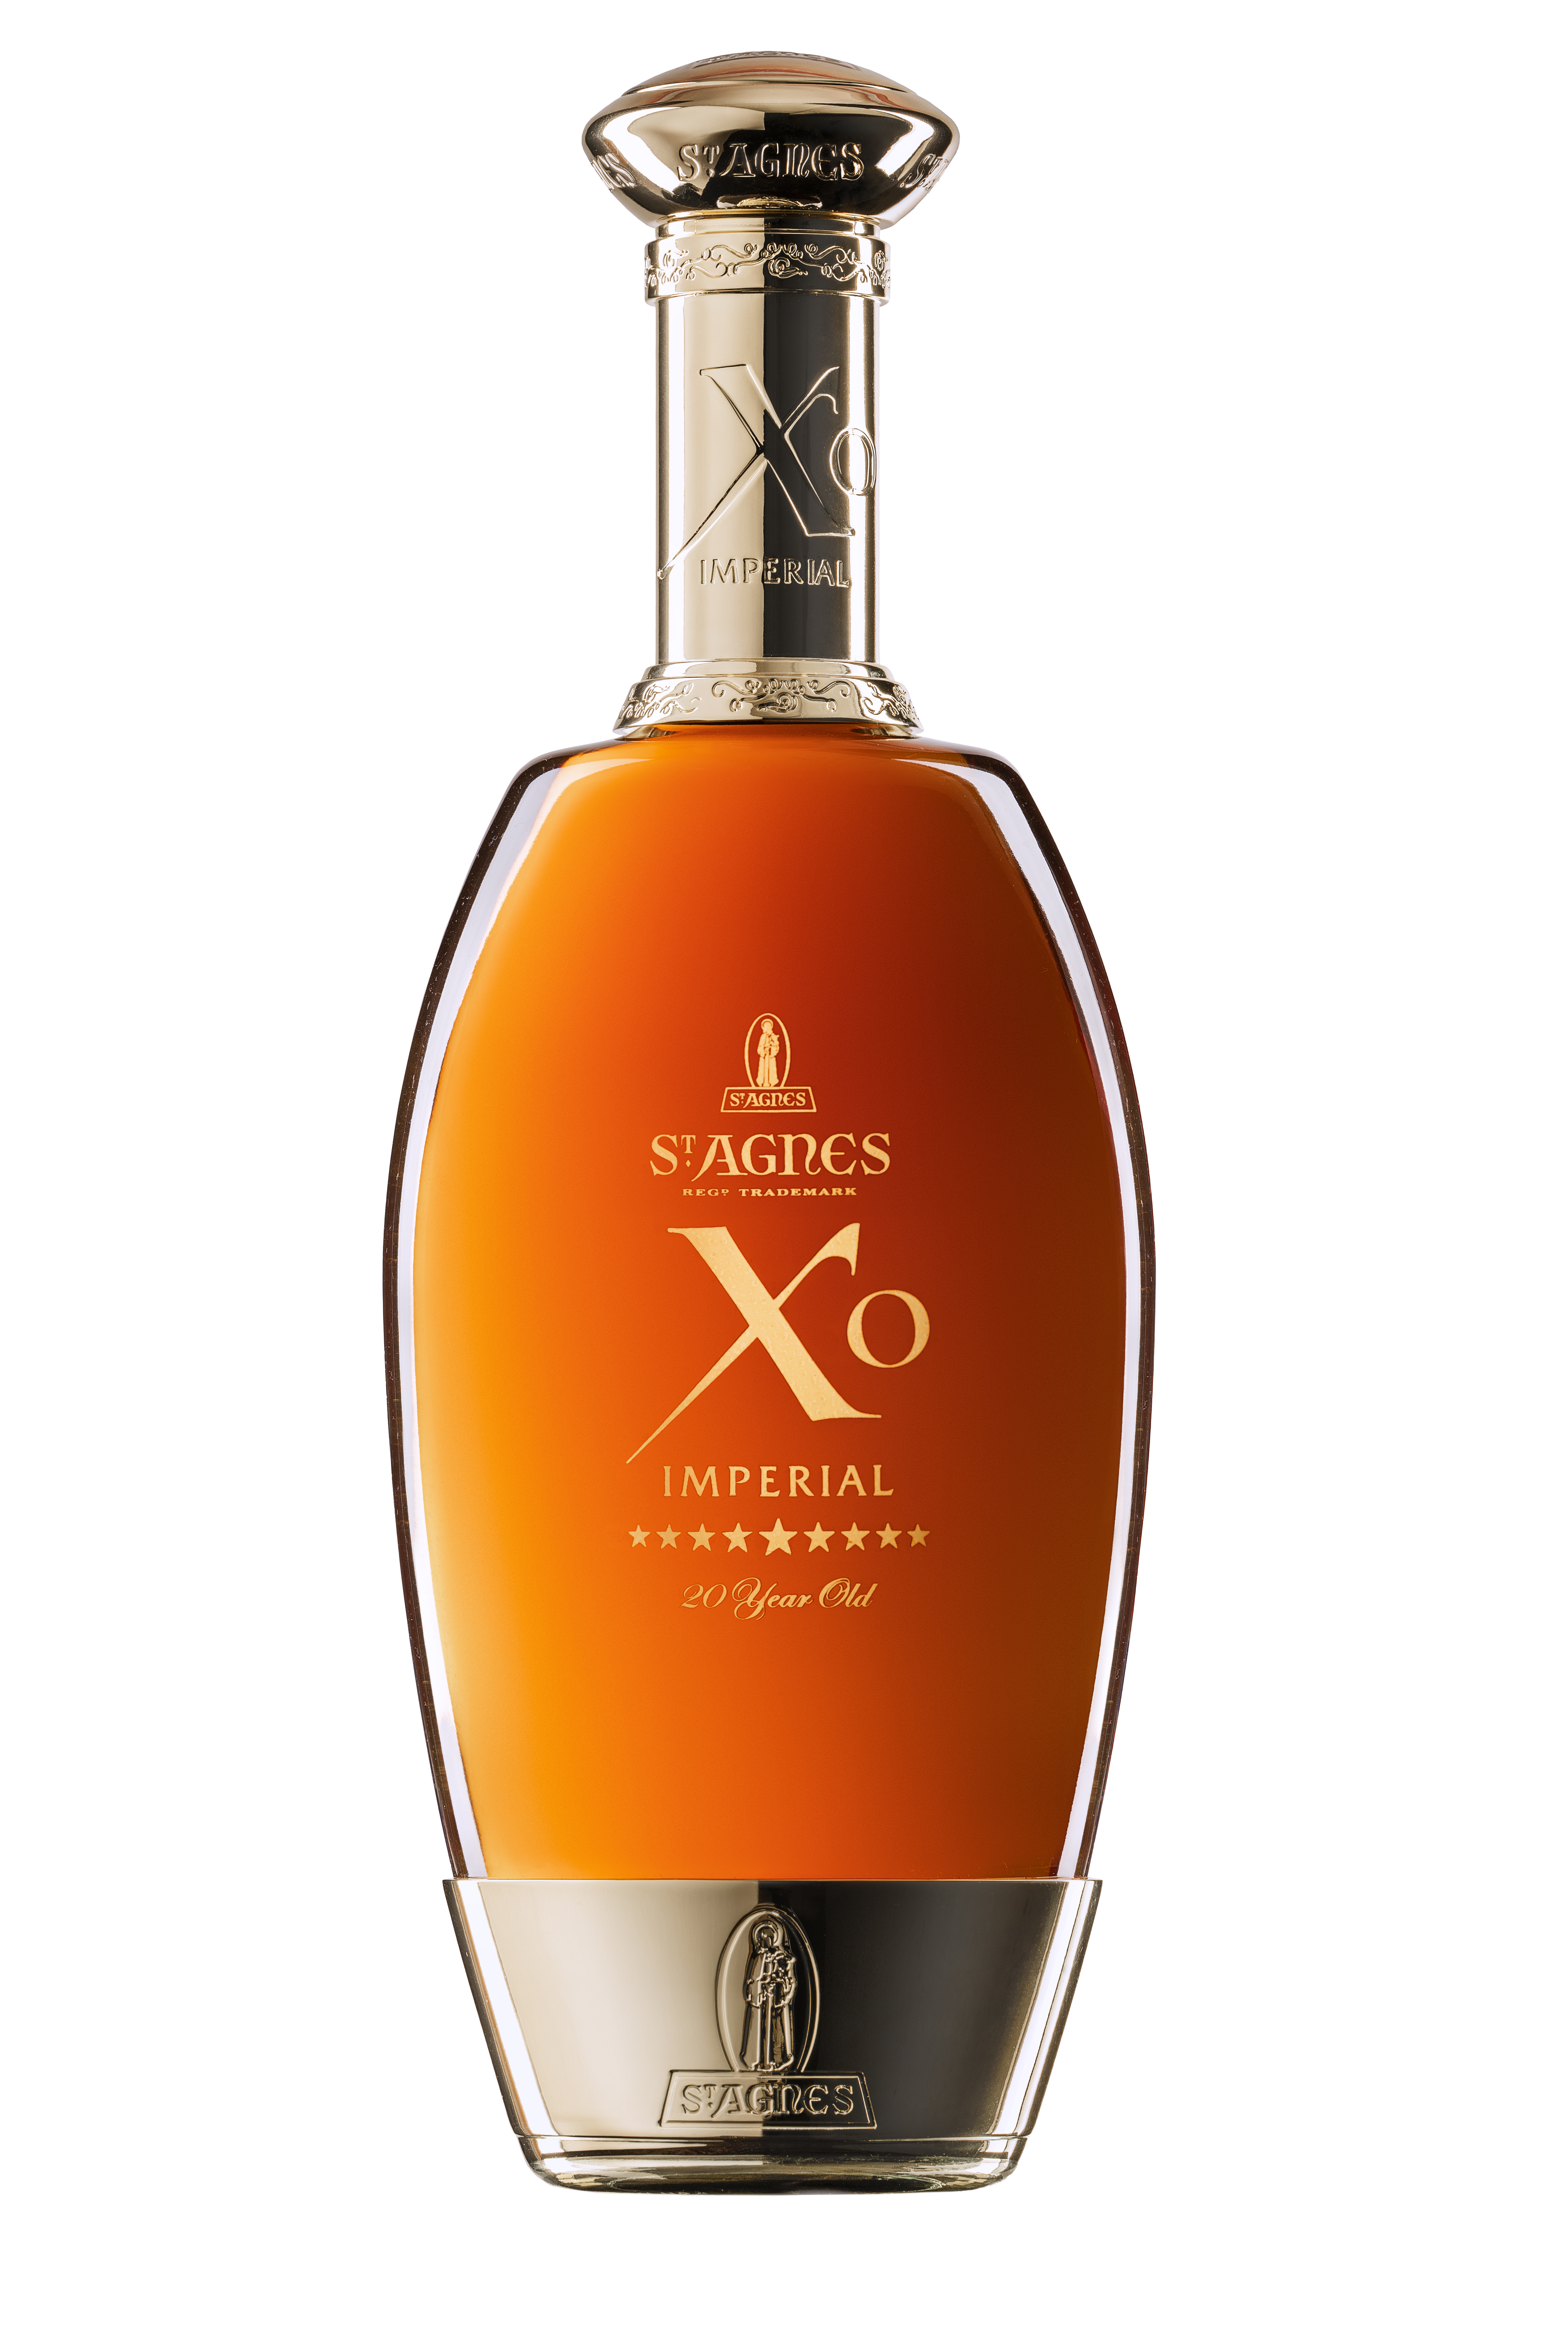 XO Imperial 20 Year Old